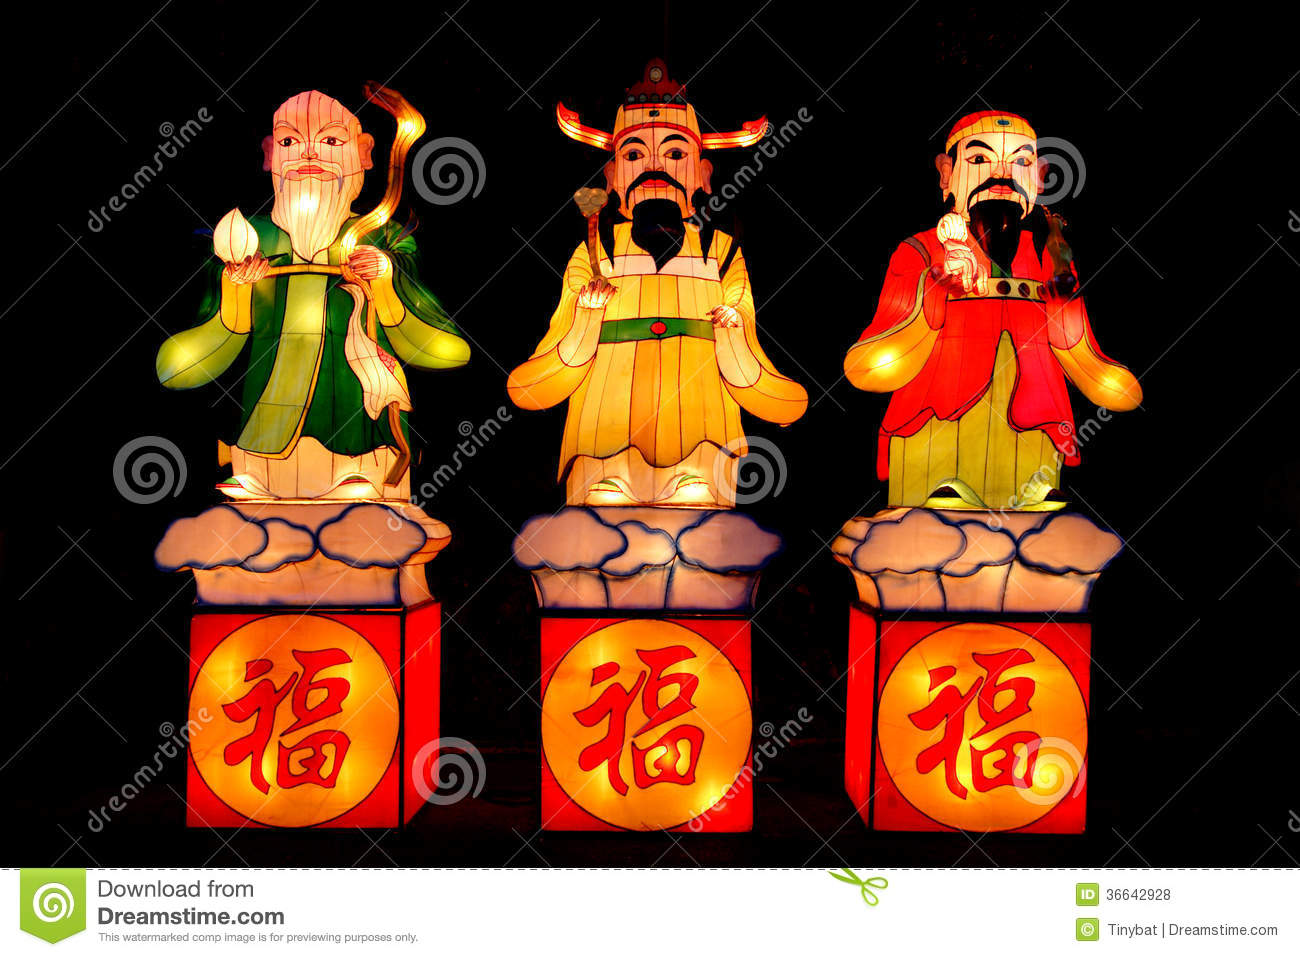 Chinese symbol health longevity stock photos 40 images chinese god fu lu shou lanterns colorful chinese god fu lu shou lanterns in a biocorpaavc Gallery